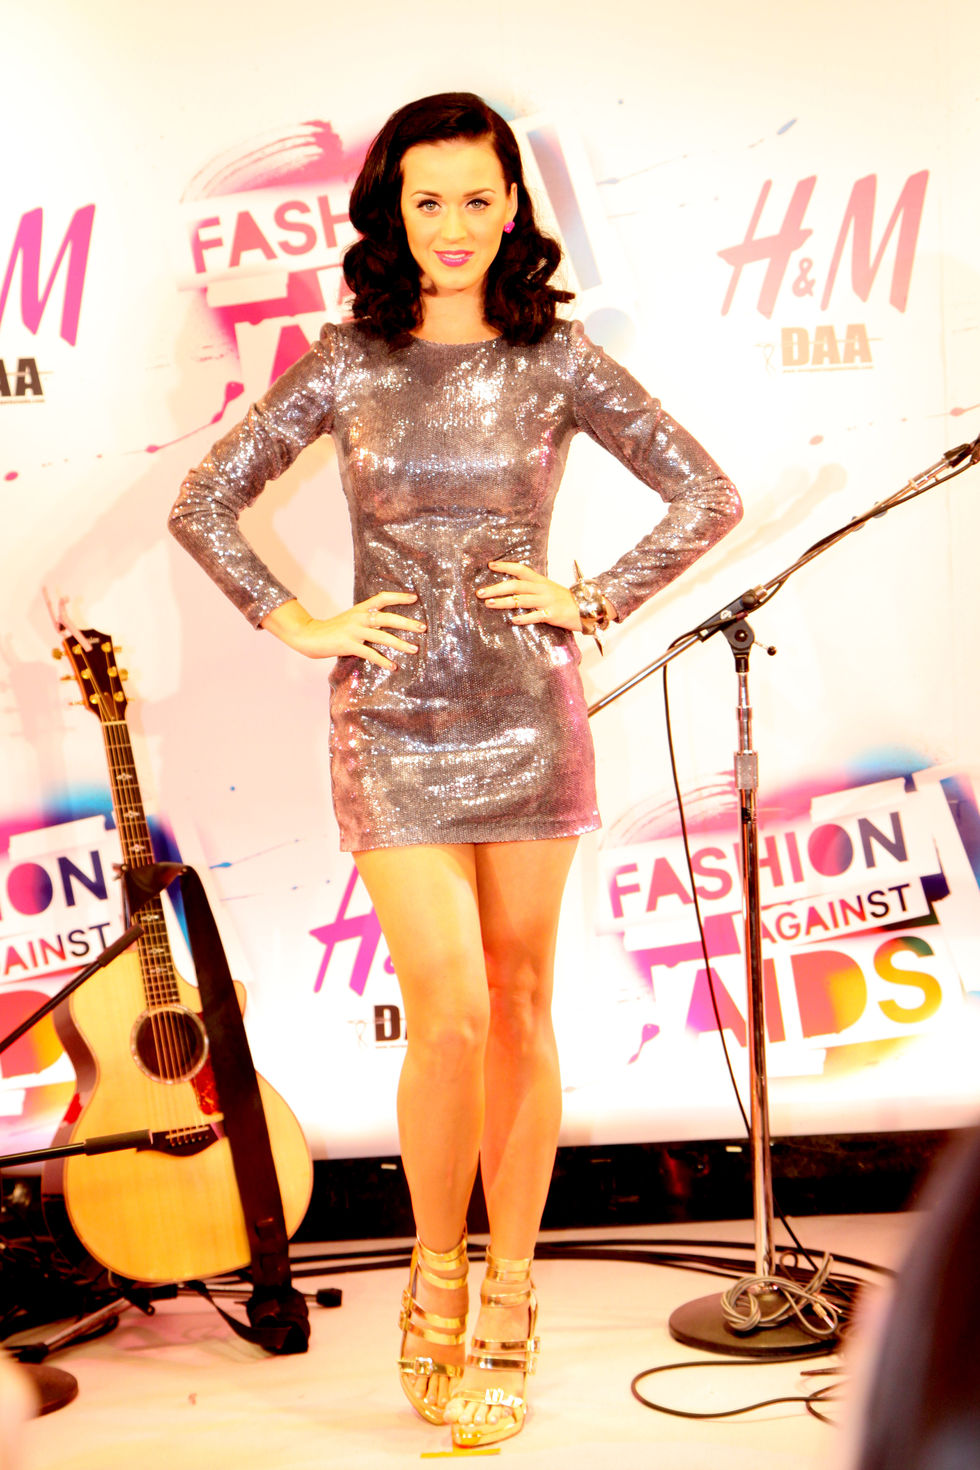 katy-perry-hms-aids-awareness-clothes-promotion-in-tokyo-01